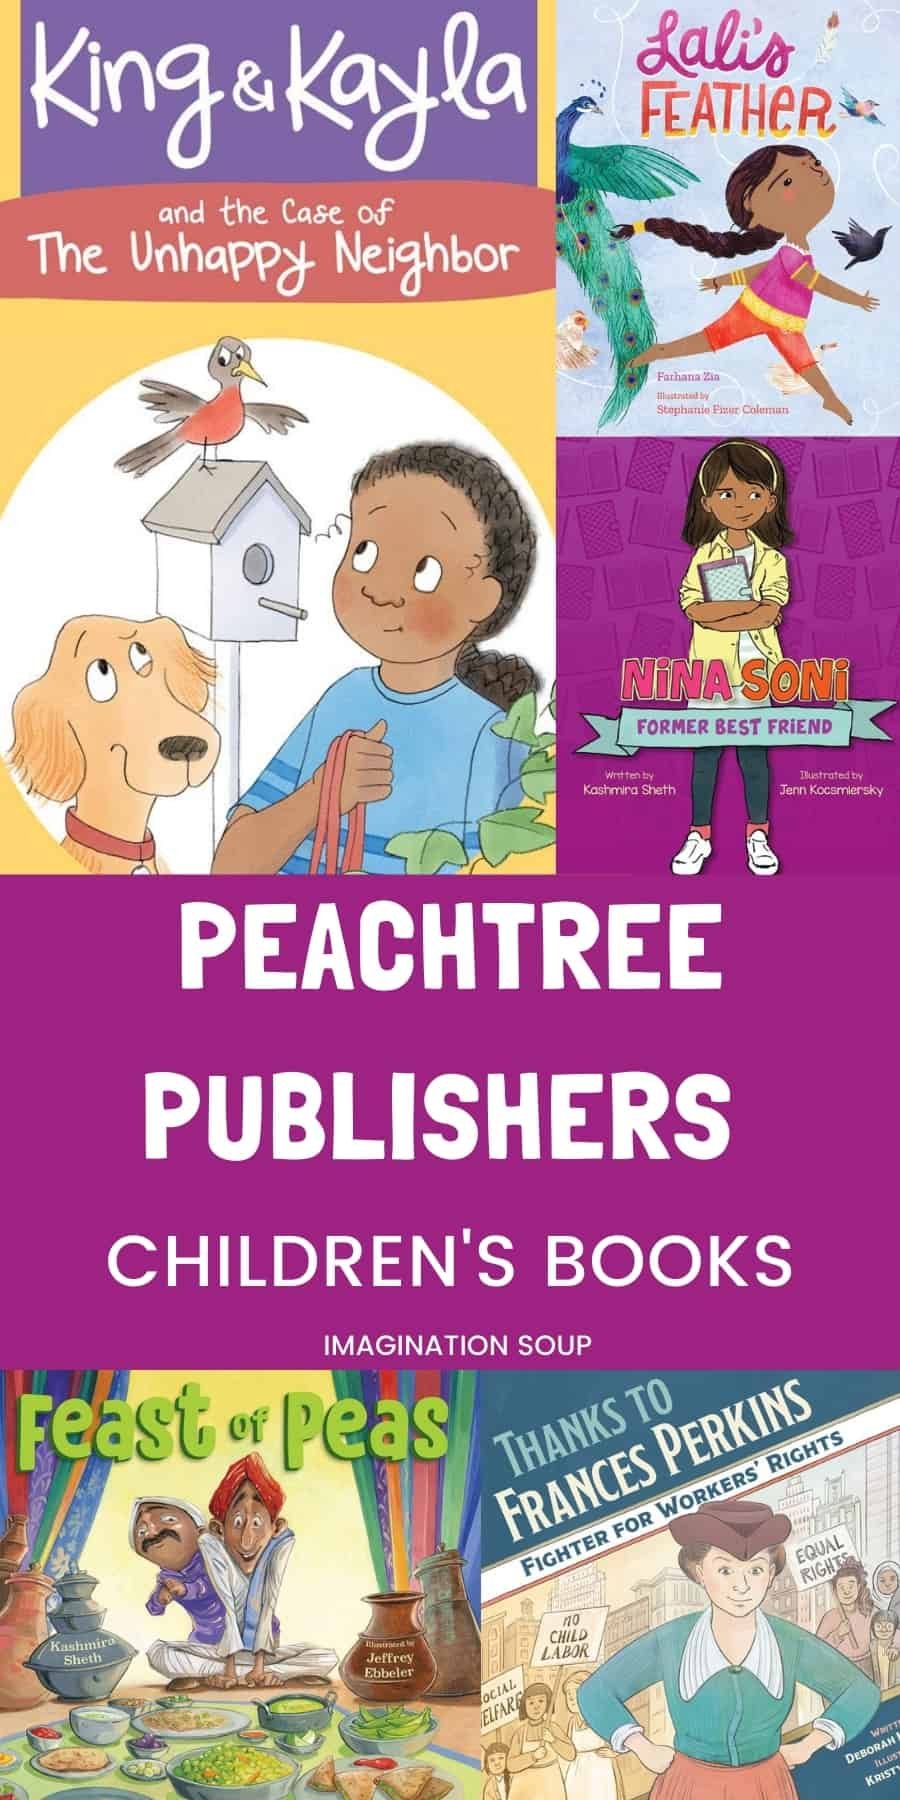 Peachtree Publishers Children's Books